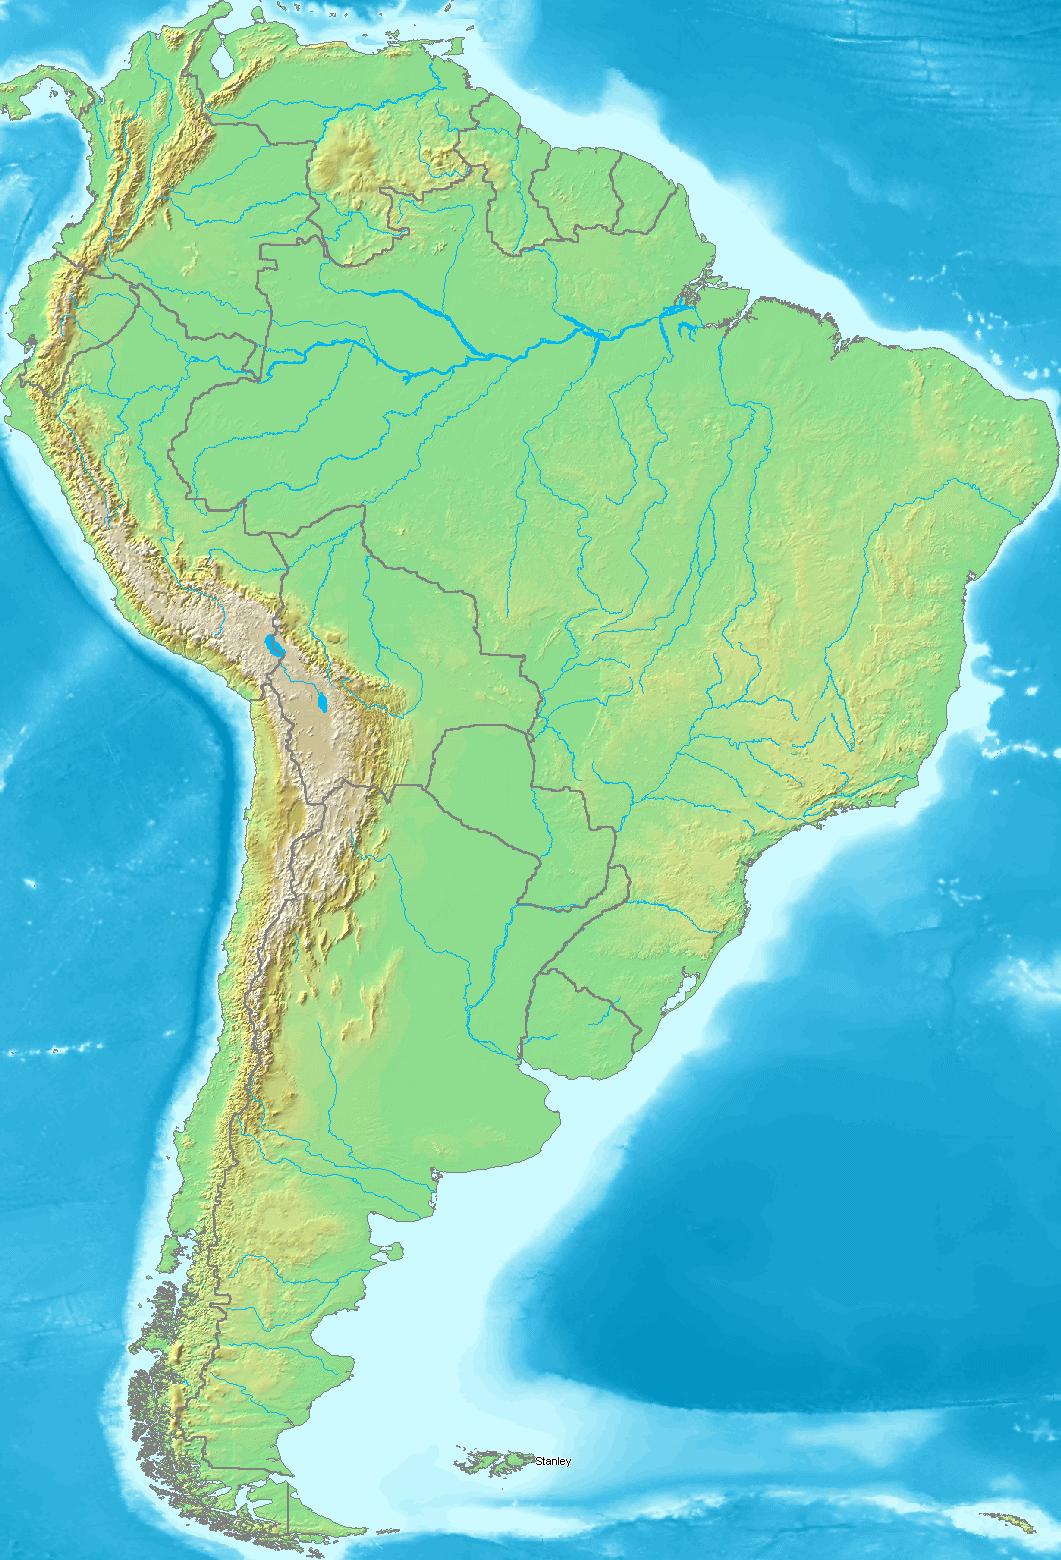 http://upload.wikimedia.org/wikipedia/commons/4/42/South_America_map.png